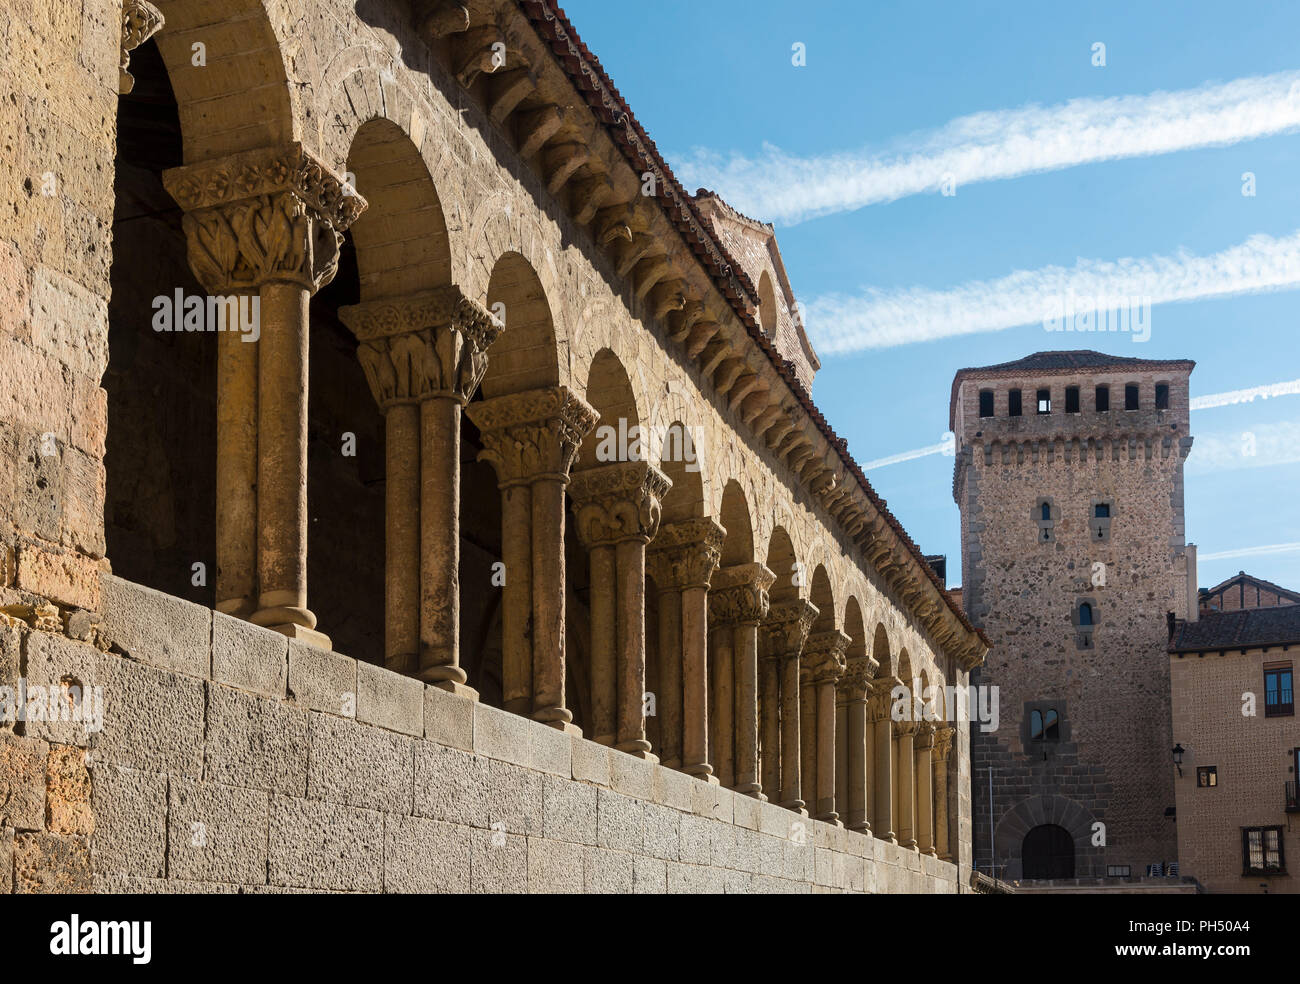 The Romanesque, arcaded portico  of San Martin church, looking towards the Torreón de Lozoya  in the Plaza Medina del Campo, Segovia, Spain - Stock Image